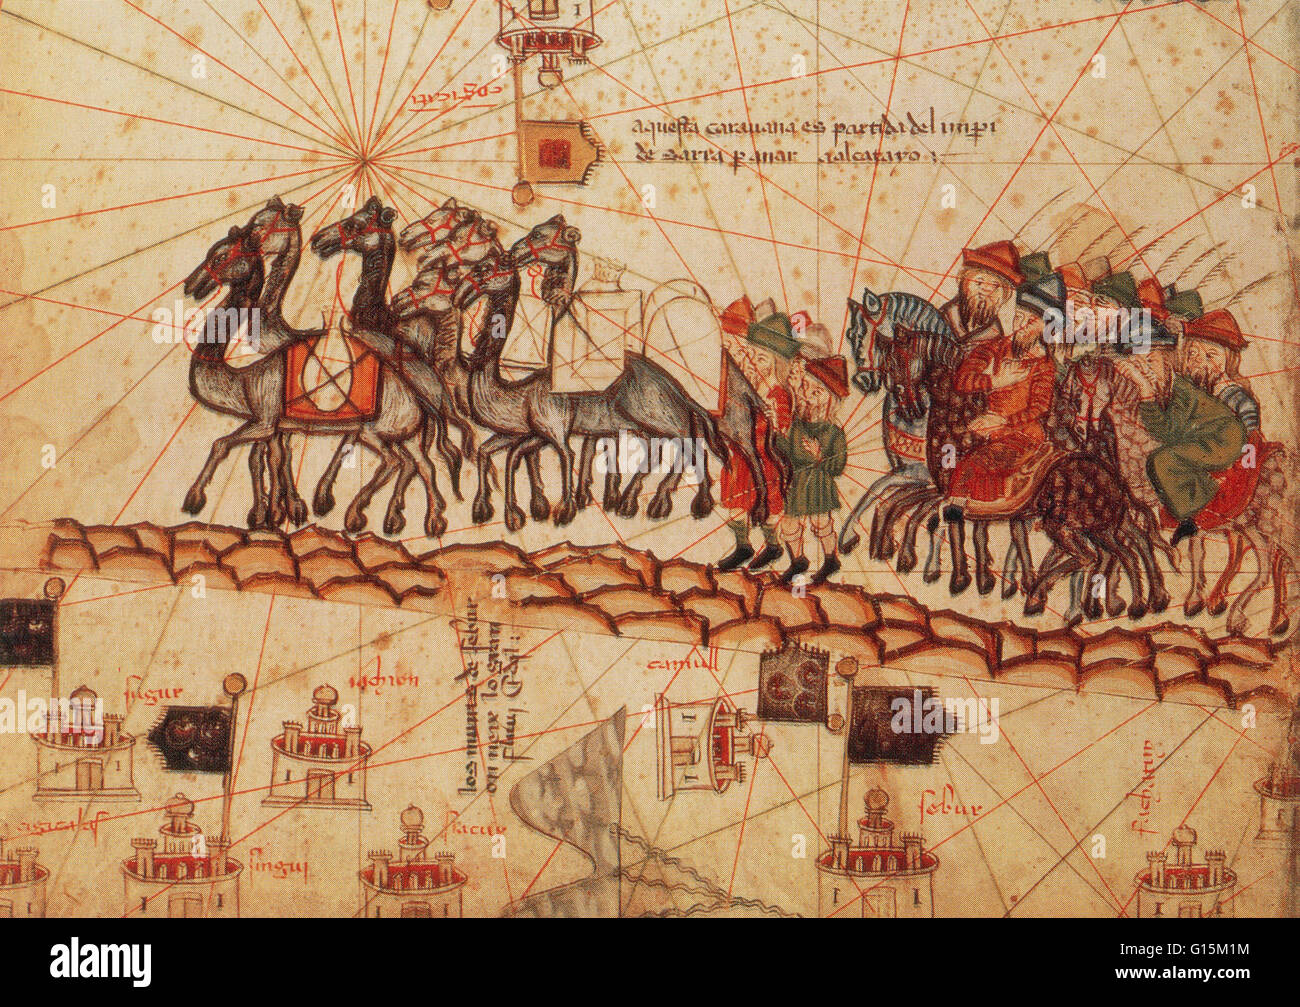 Marco Polo's caravan, in an illustration from the Catalan Atlas, circa 1375. Marco Polo (1254-1324) was a Venetian merchant traveler and the most famous Westerner to have traveled on the Silk Road. He excelled all the other travelers in his determination, Stock Photo